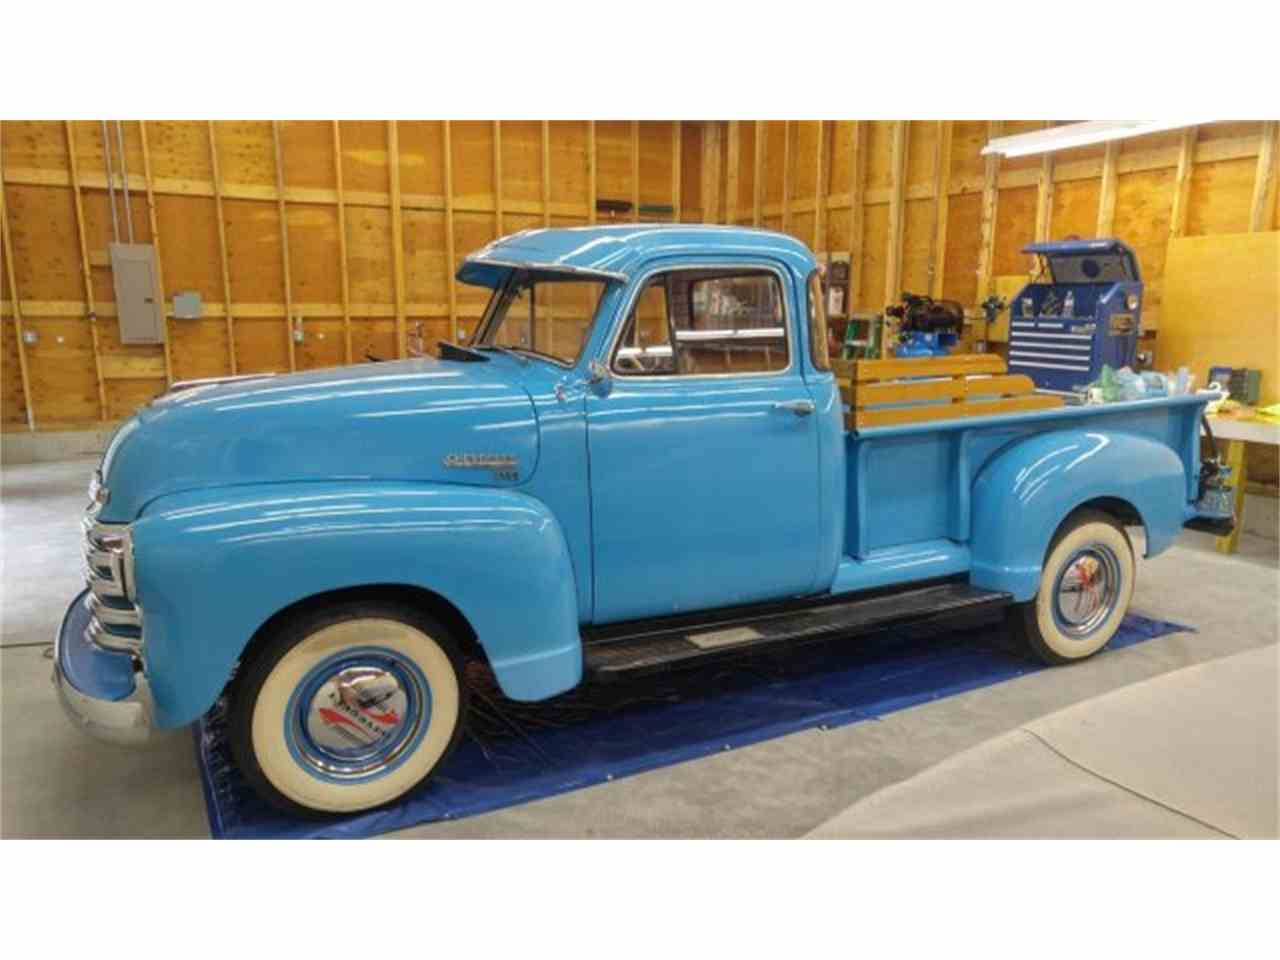 Large Picture of 1951 Chevrolet 3/4-Ton Pickup - $21,500.00 - LRWS